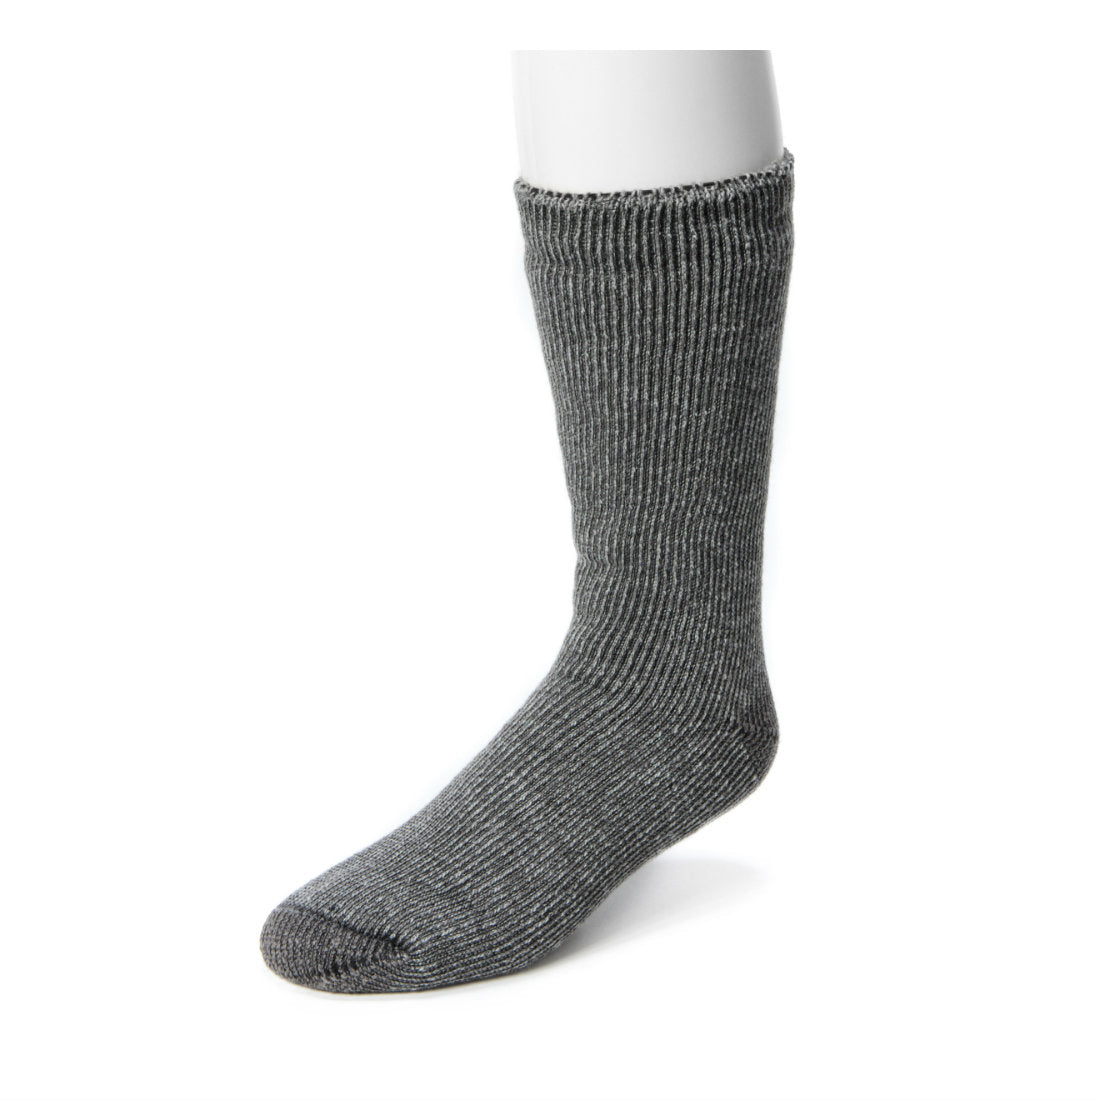 Muk Luks Thermal Boot Socks Grey Size 10 - 13